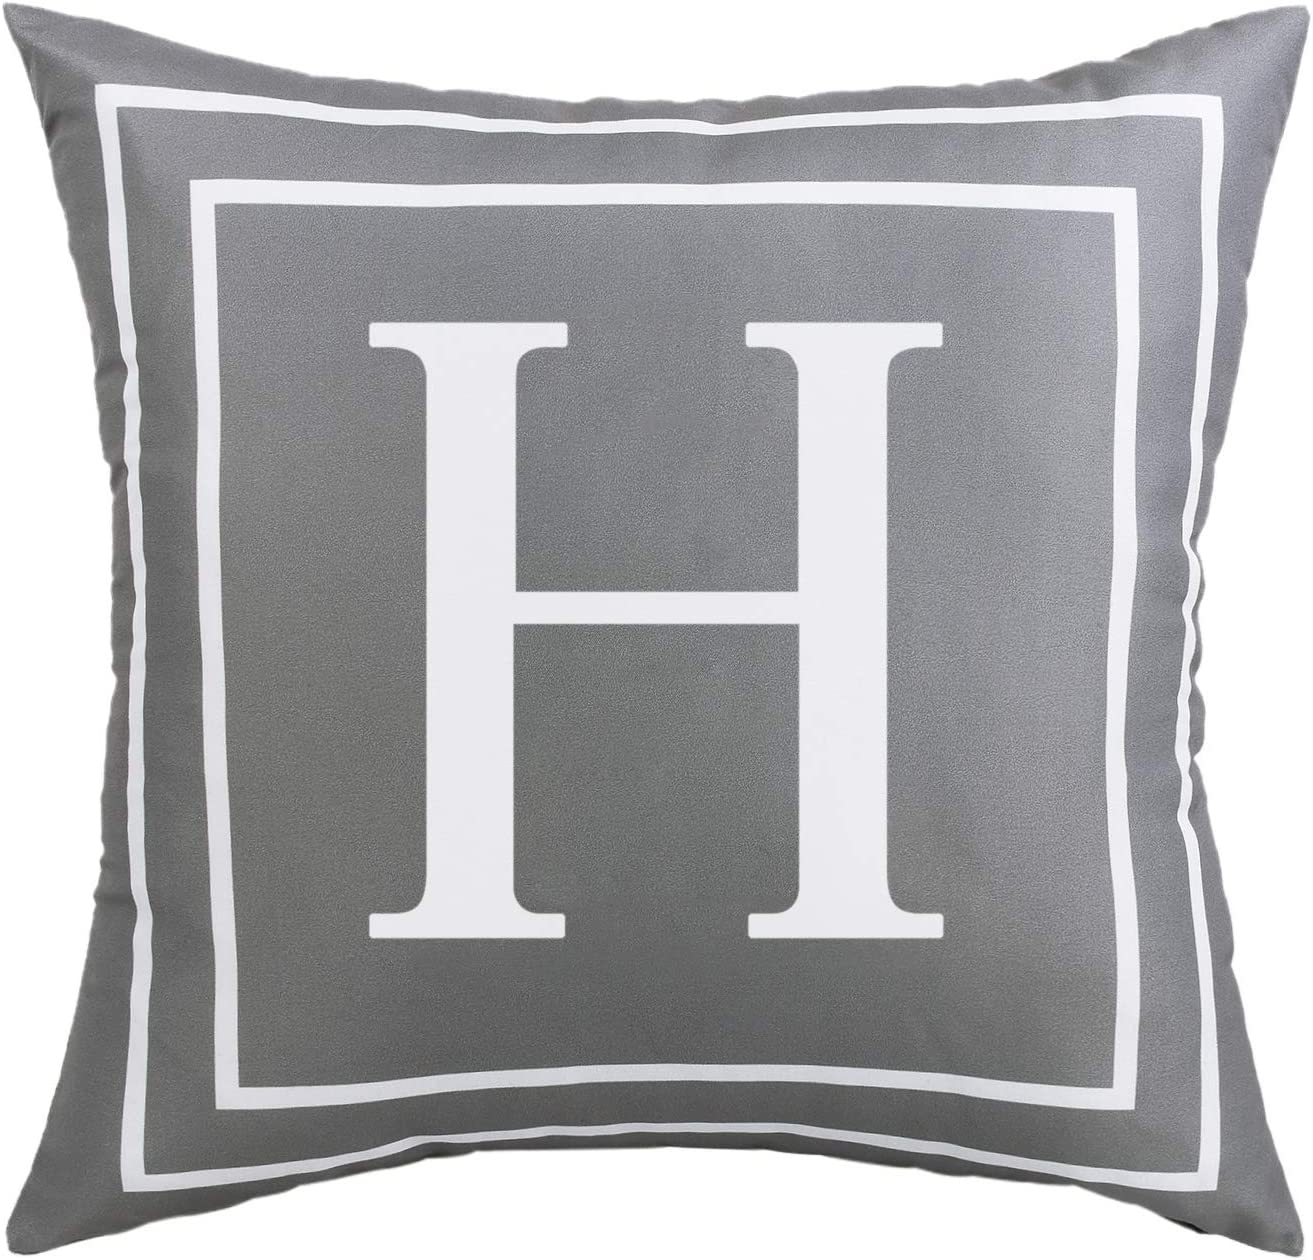 Fascidorm Gray Pillow Cover English Alphabet H Throw Pillow Case Modern Cushion Cover Square Pillowcase Decoration for Sofa Bed Chair Car 18 x 18 Inch